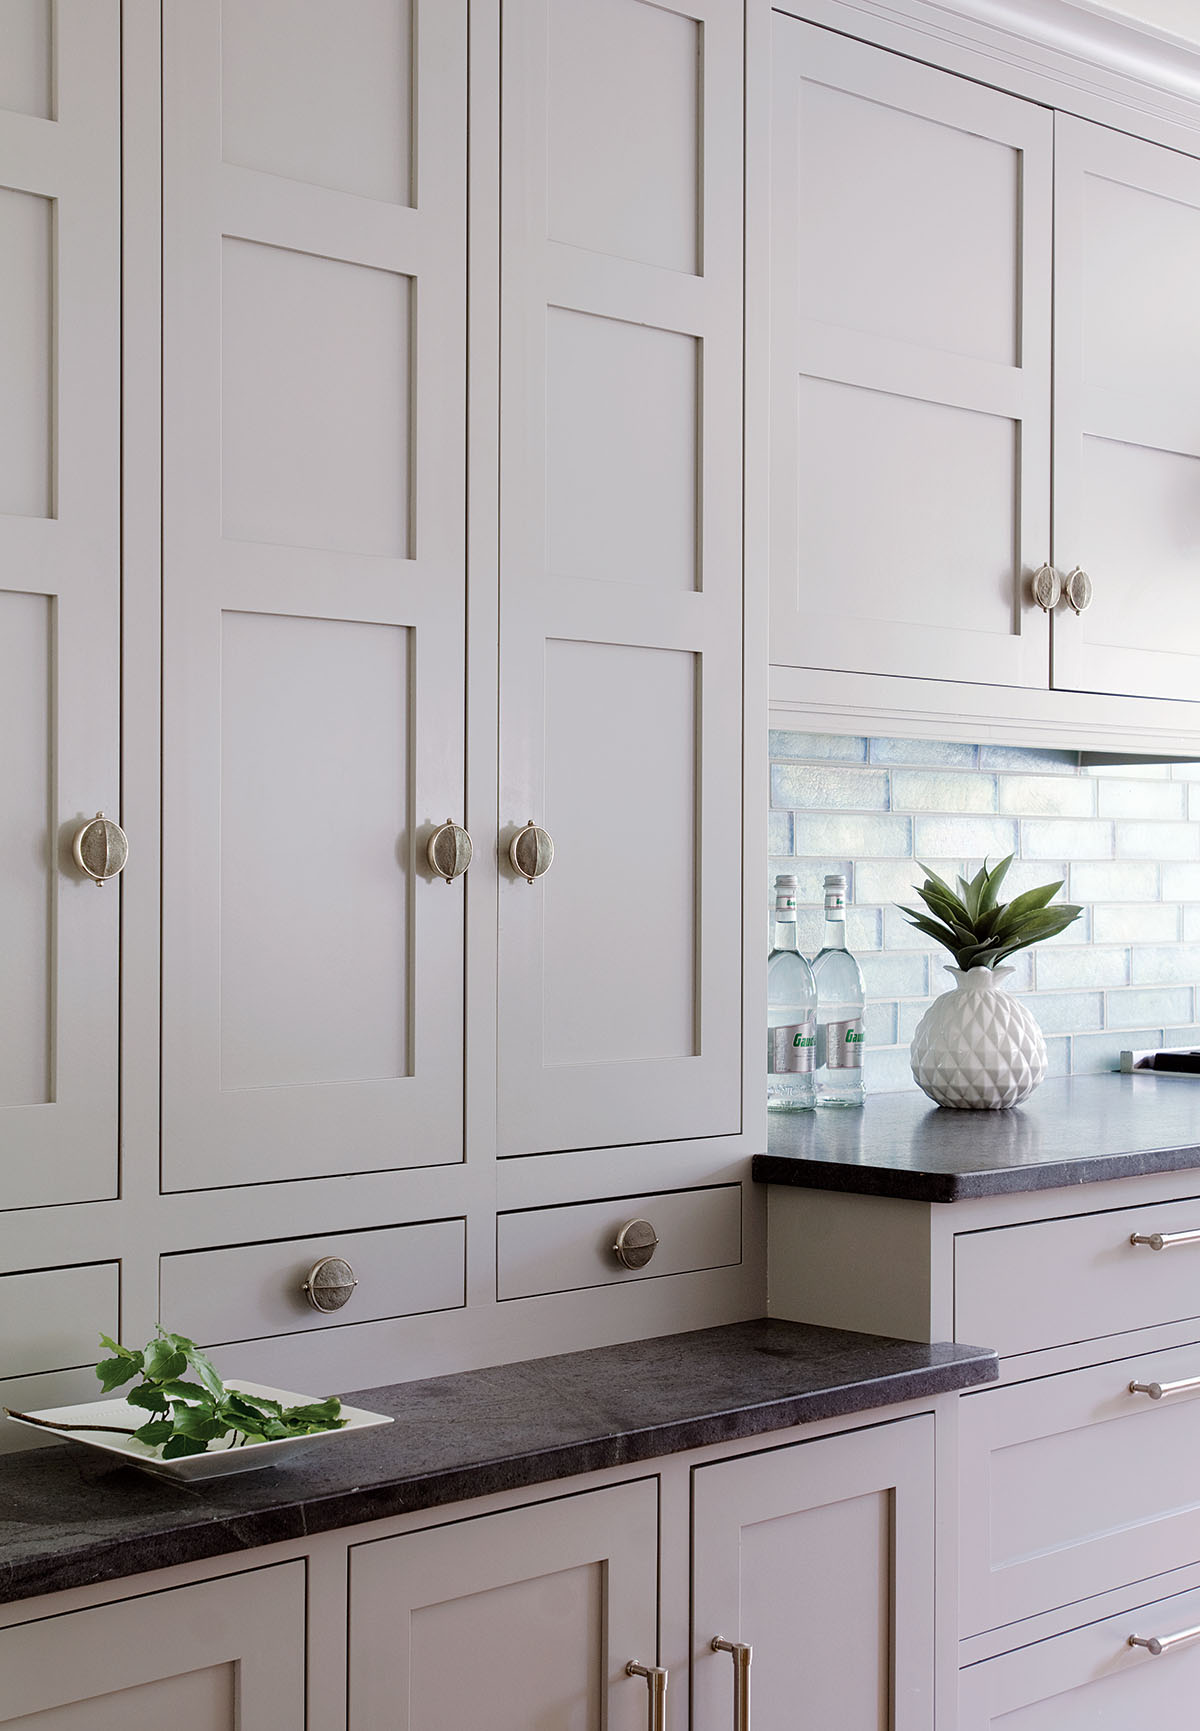 Kitchens Guide 2014